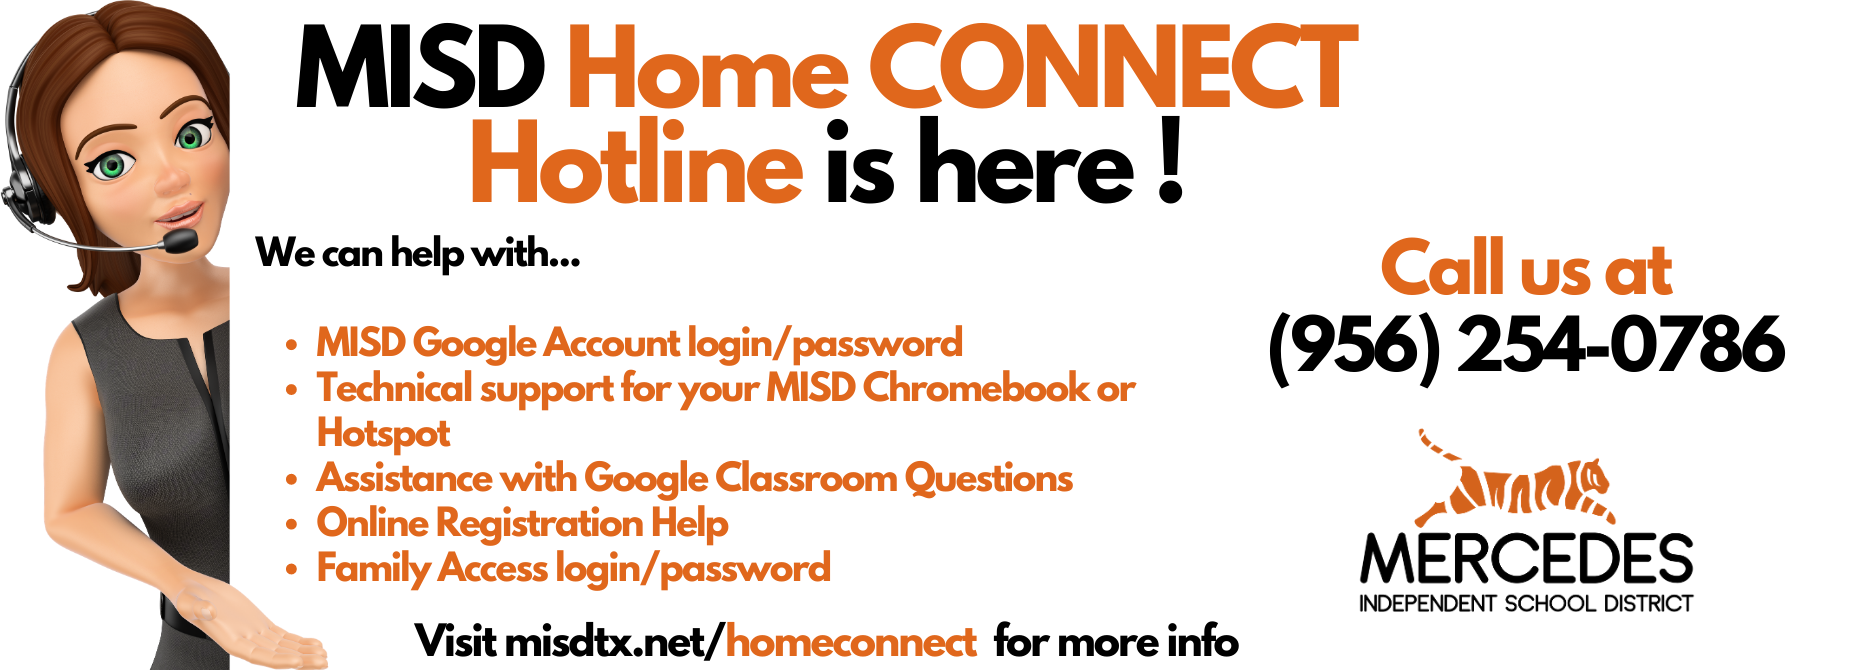 MISD Home CONNECT Image